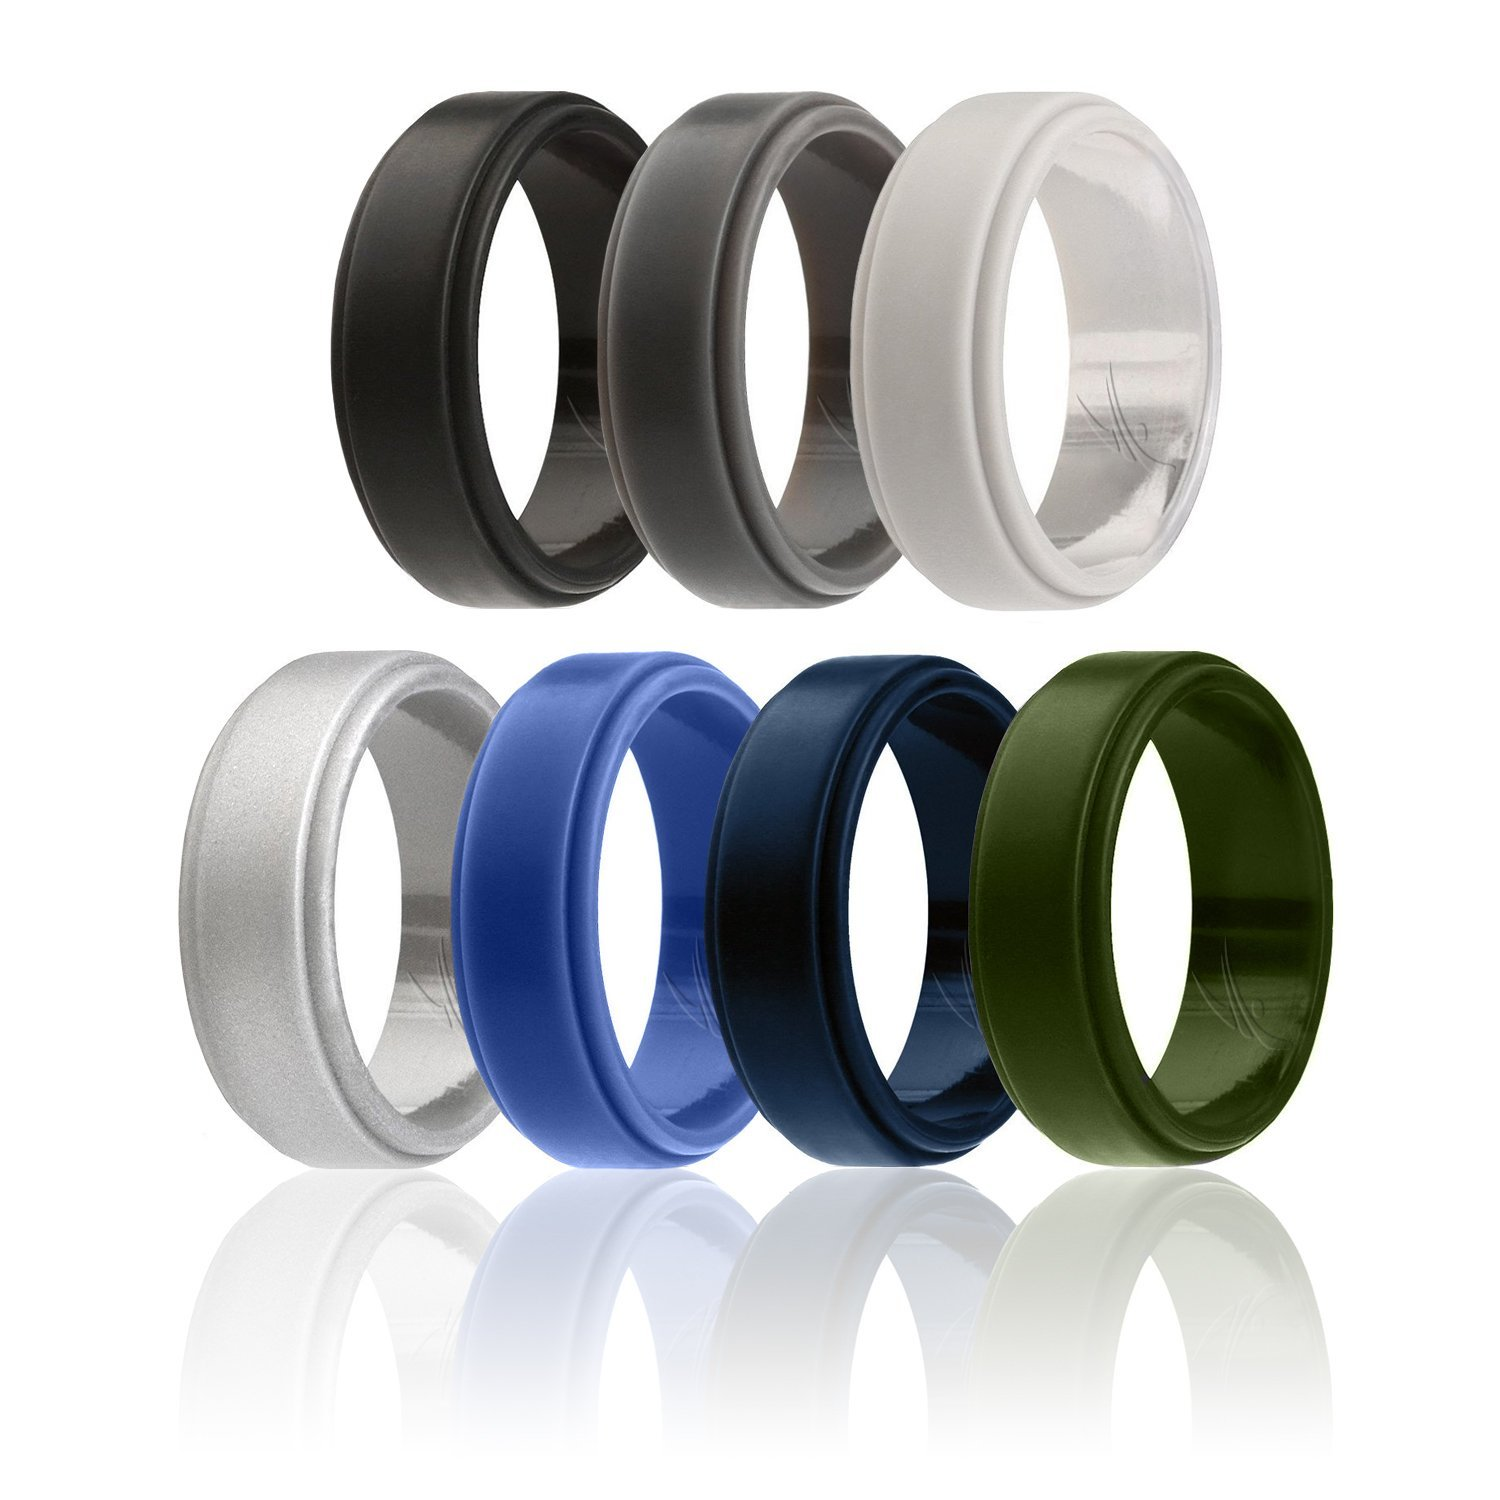 ROQ Silicone Wedding Ring for Men, 4 Pack Silicone Rubber Band Step Edge - Black, Grey, Silver, Light Grey, Blue, Dark Blue, Olive Green - Size 11